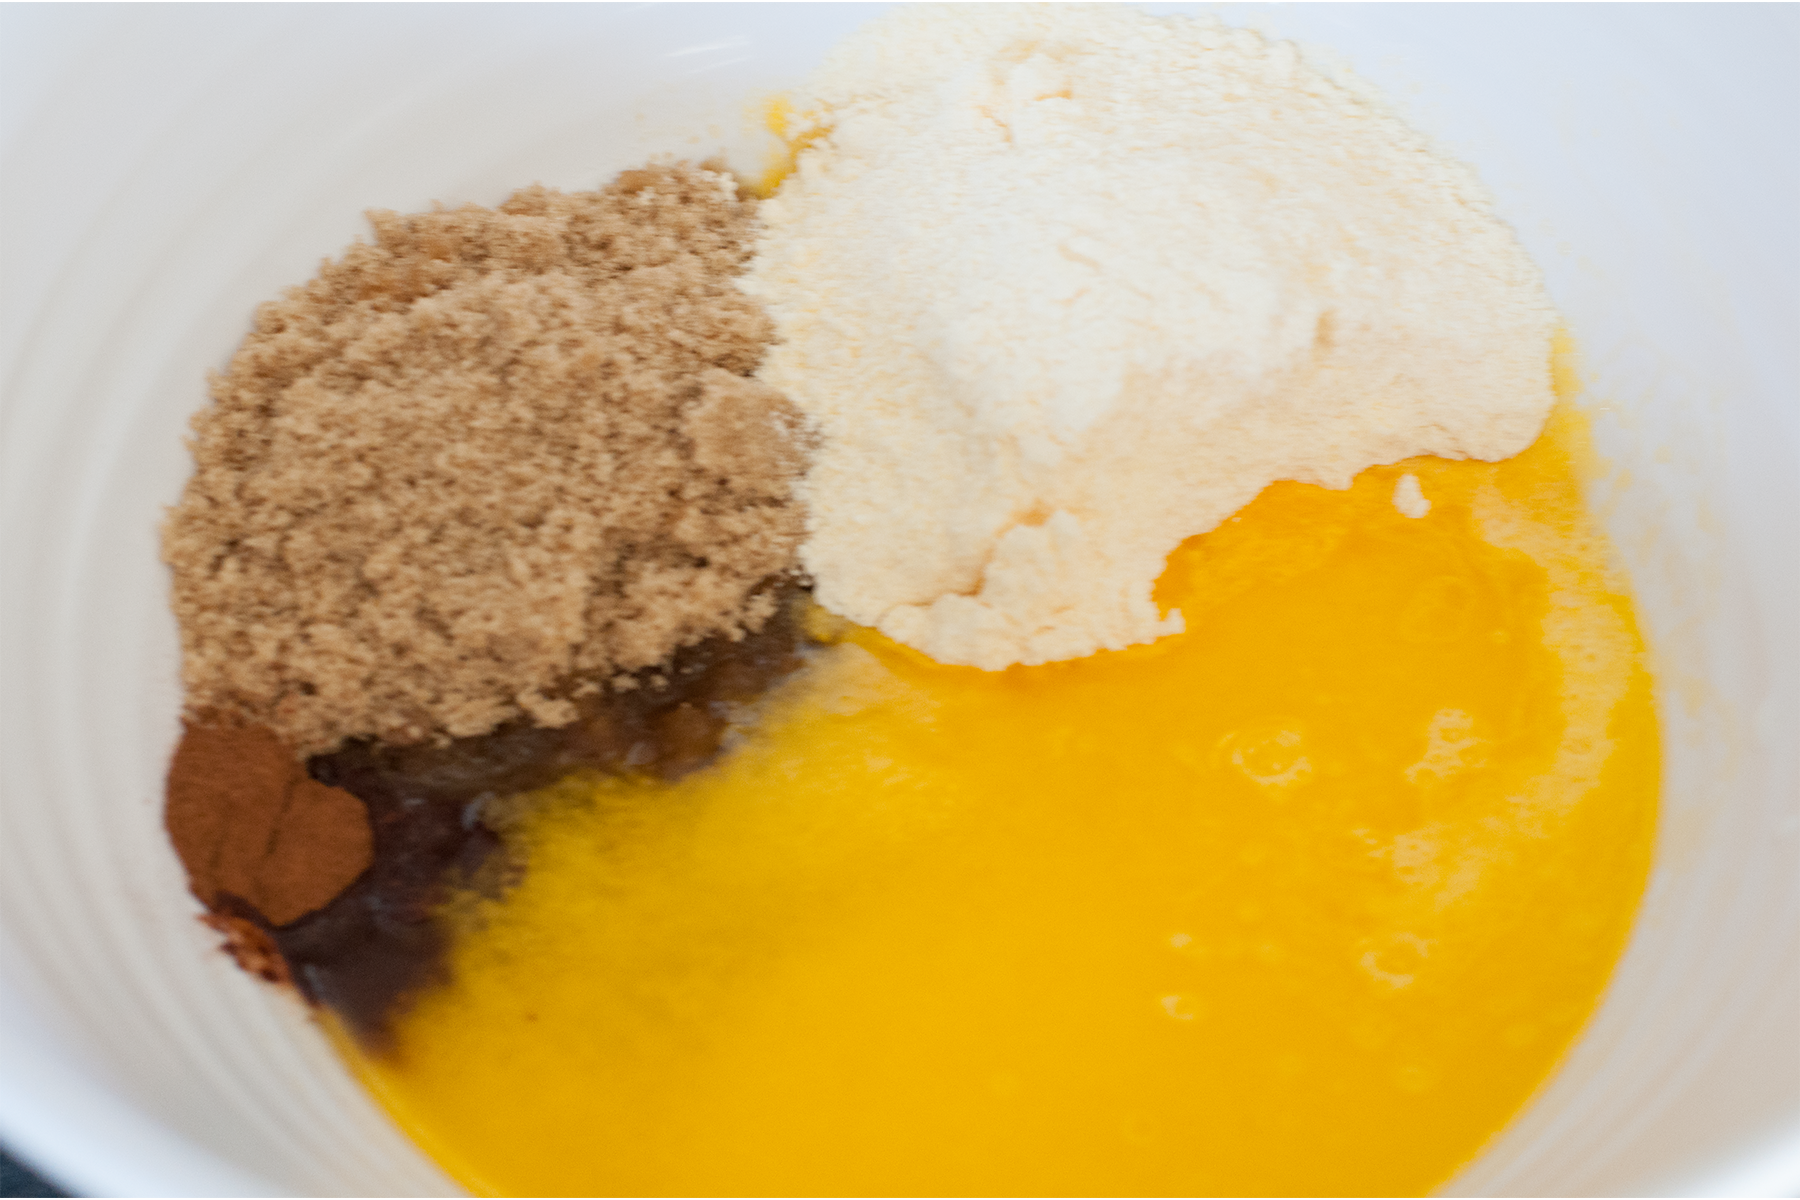 caramel sauce ingredients - feature image